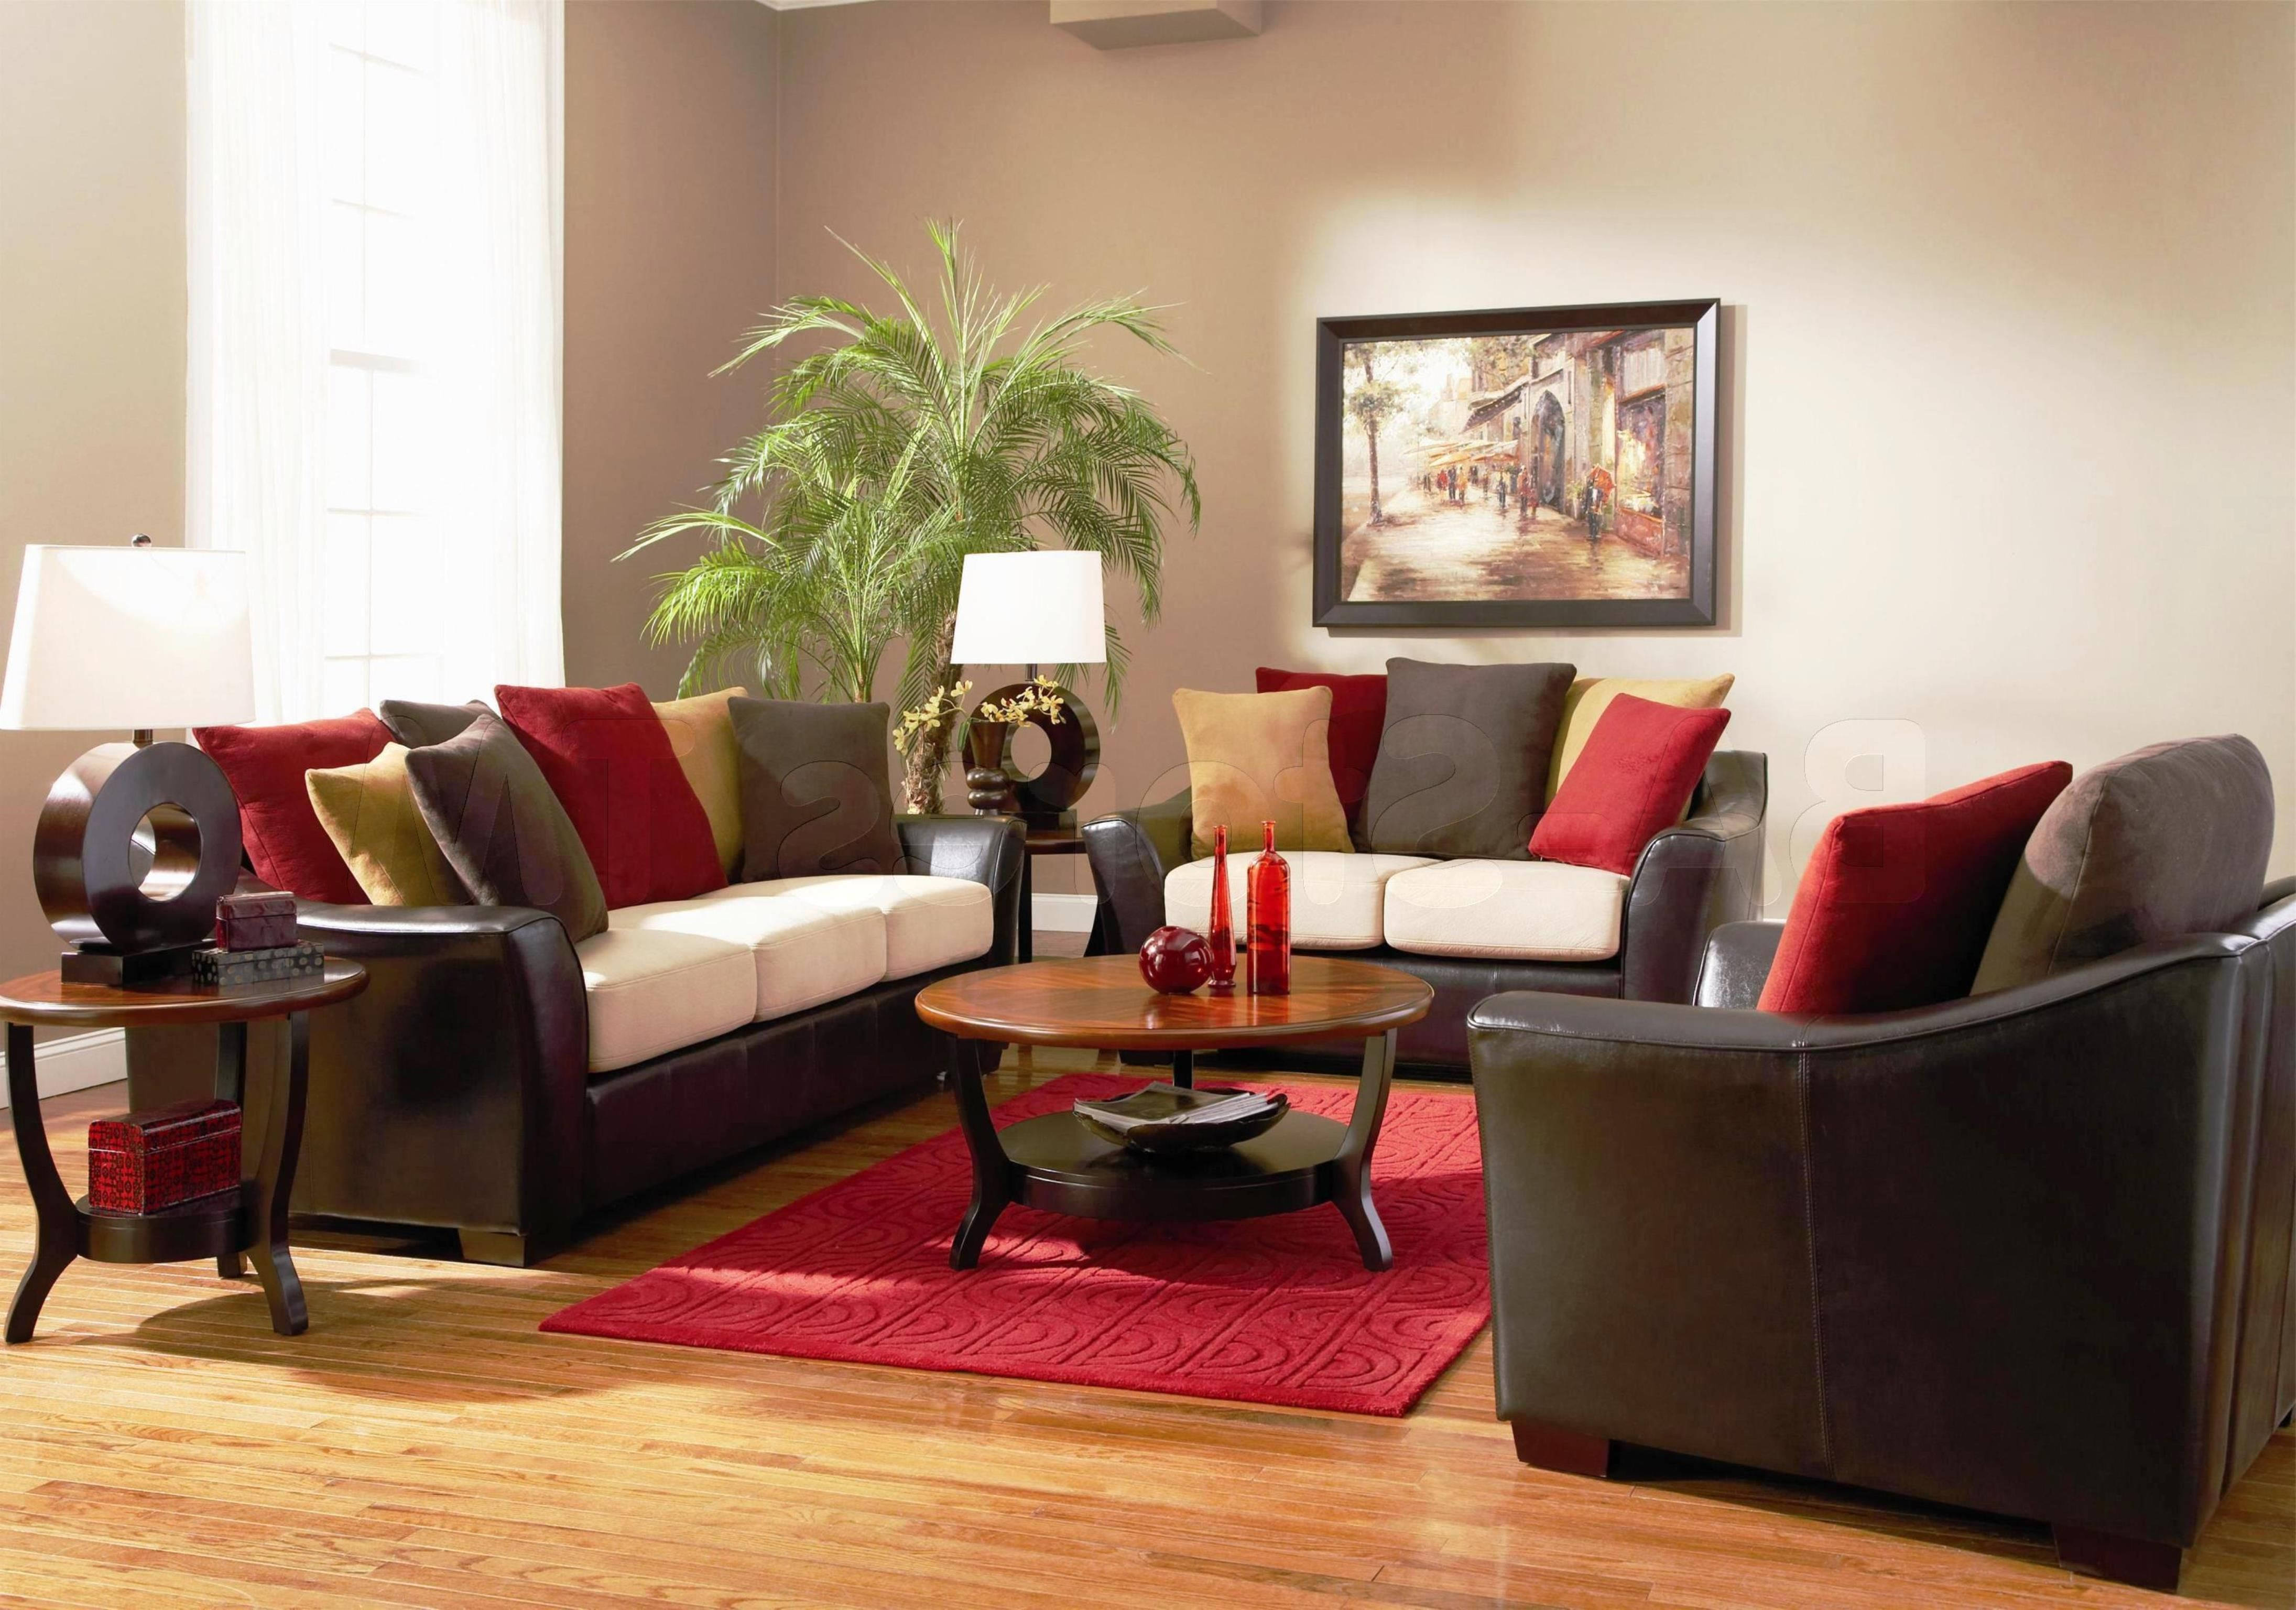 living room designs ideas on a bud and maroon color furniture